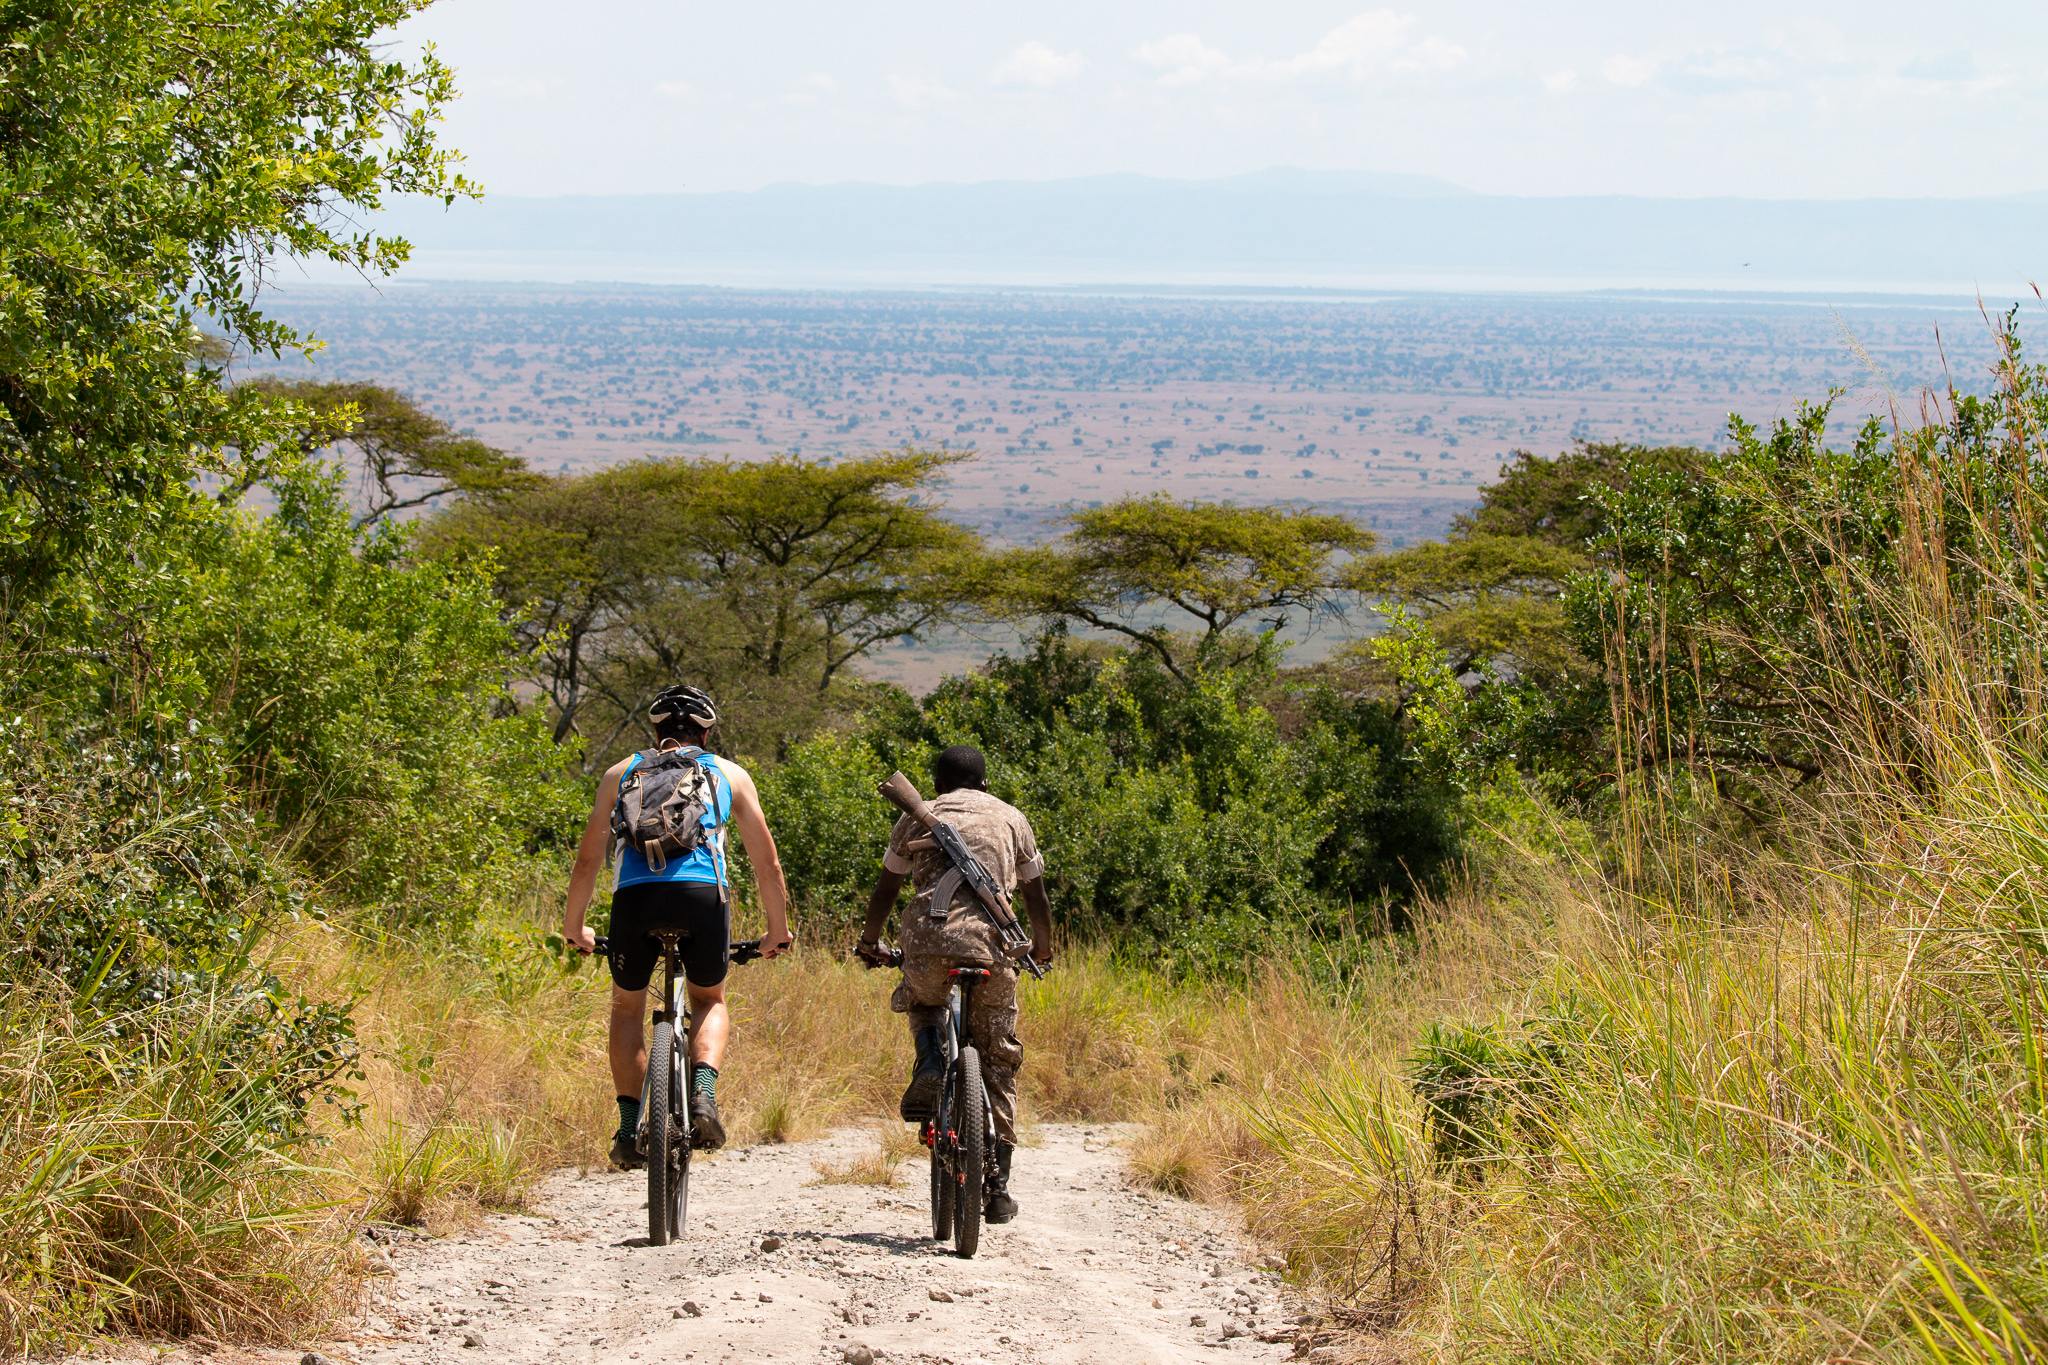 Showing how beautiful cycling in national parks in Uganda is